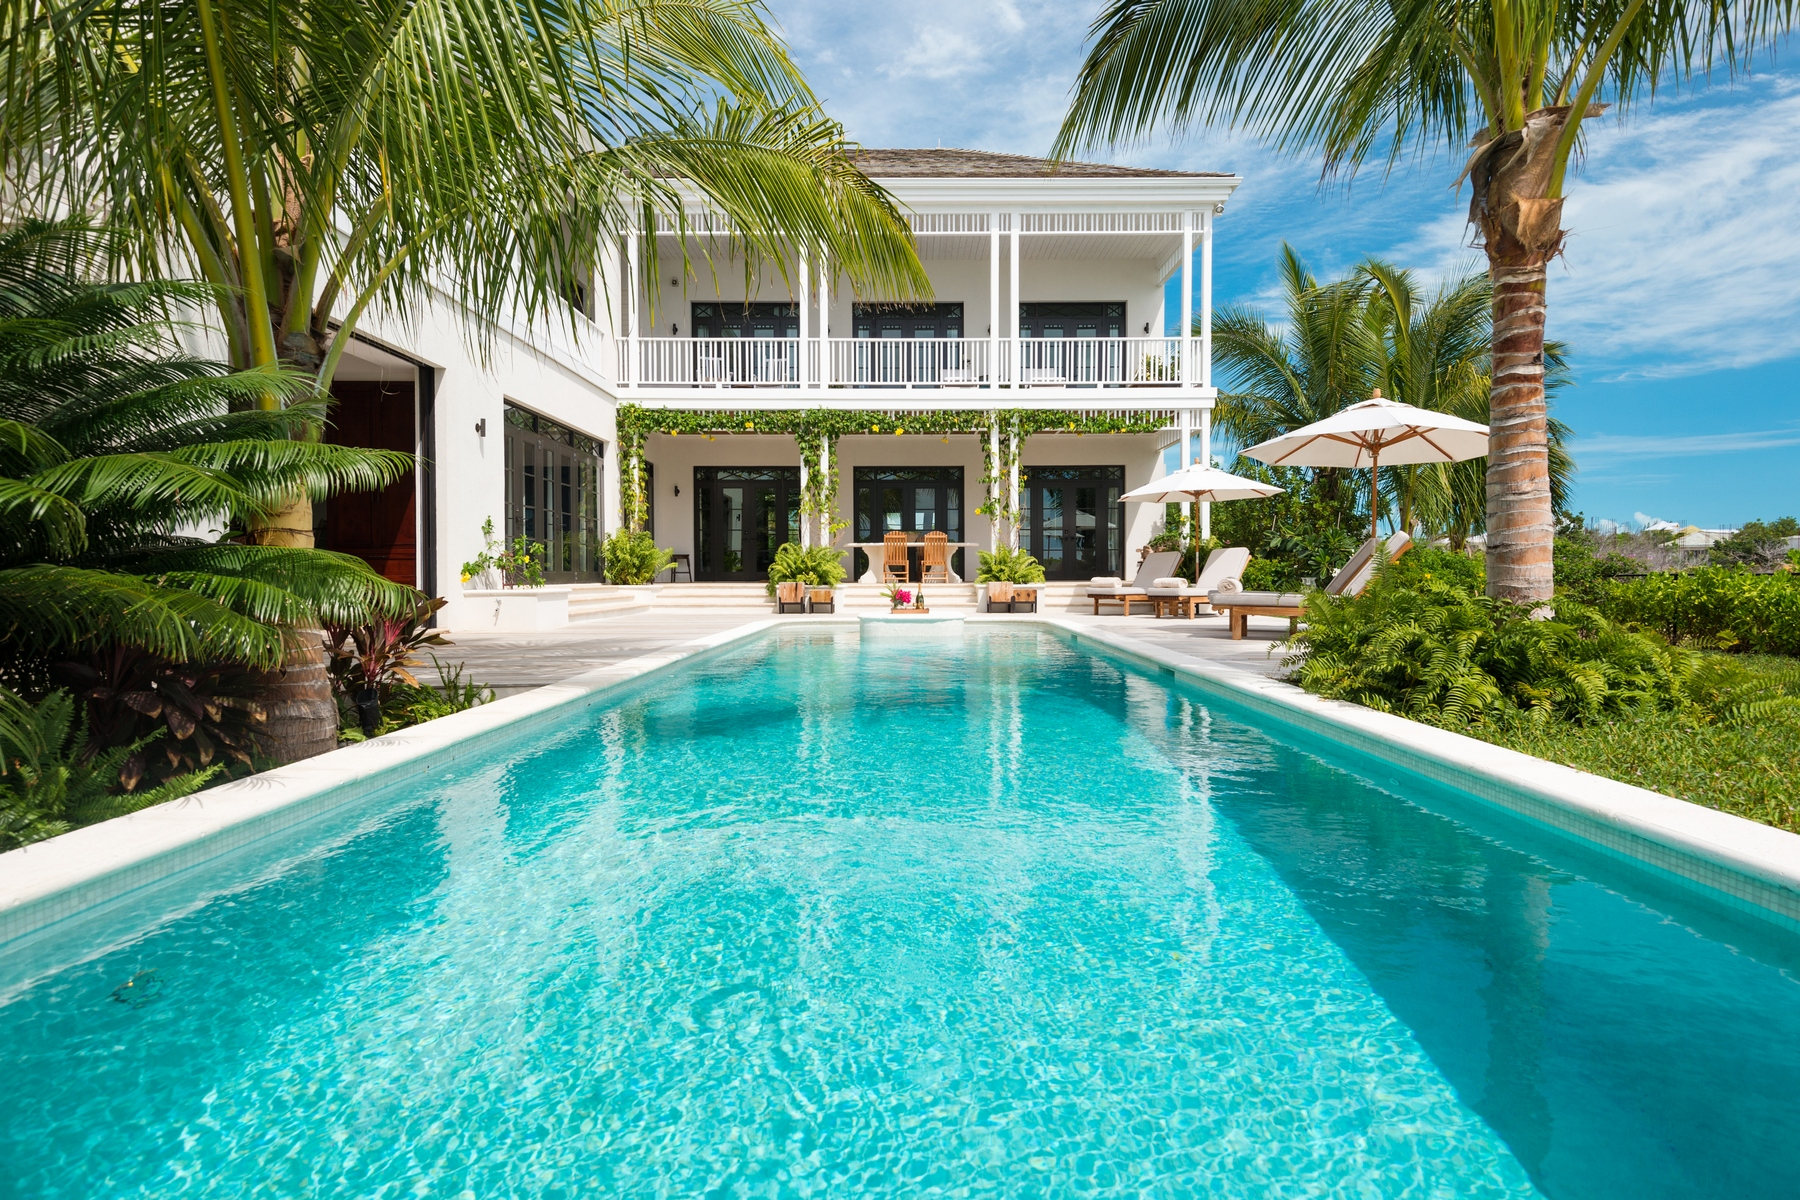 Single Family Home for Rent at Saving Grace Vacation Rental Beachfront Grace Bay, TC Turks And Caicos Islands